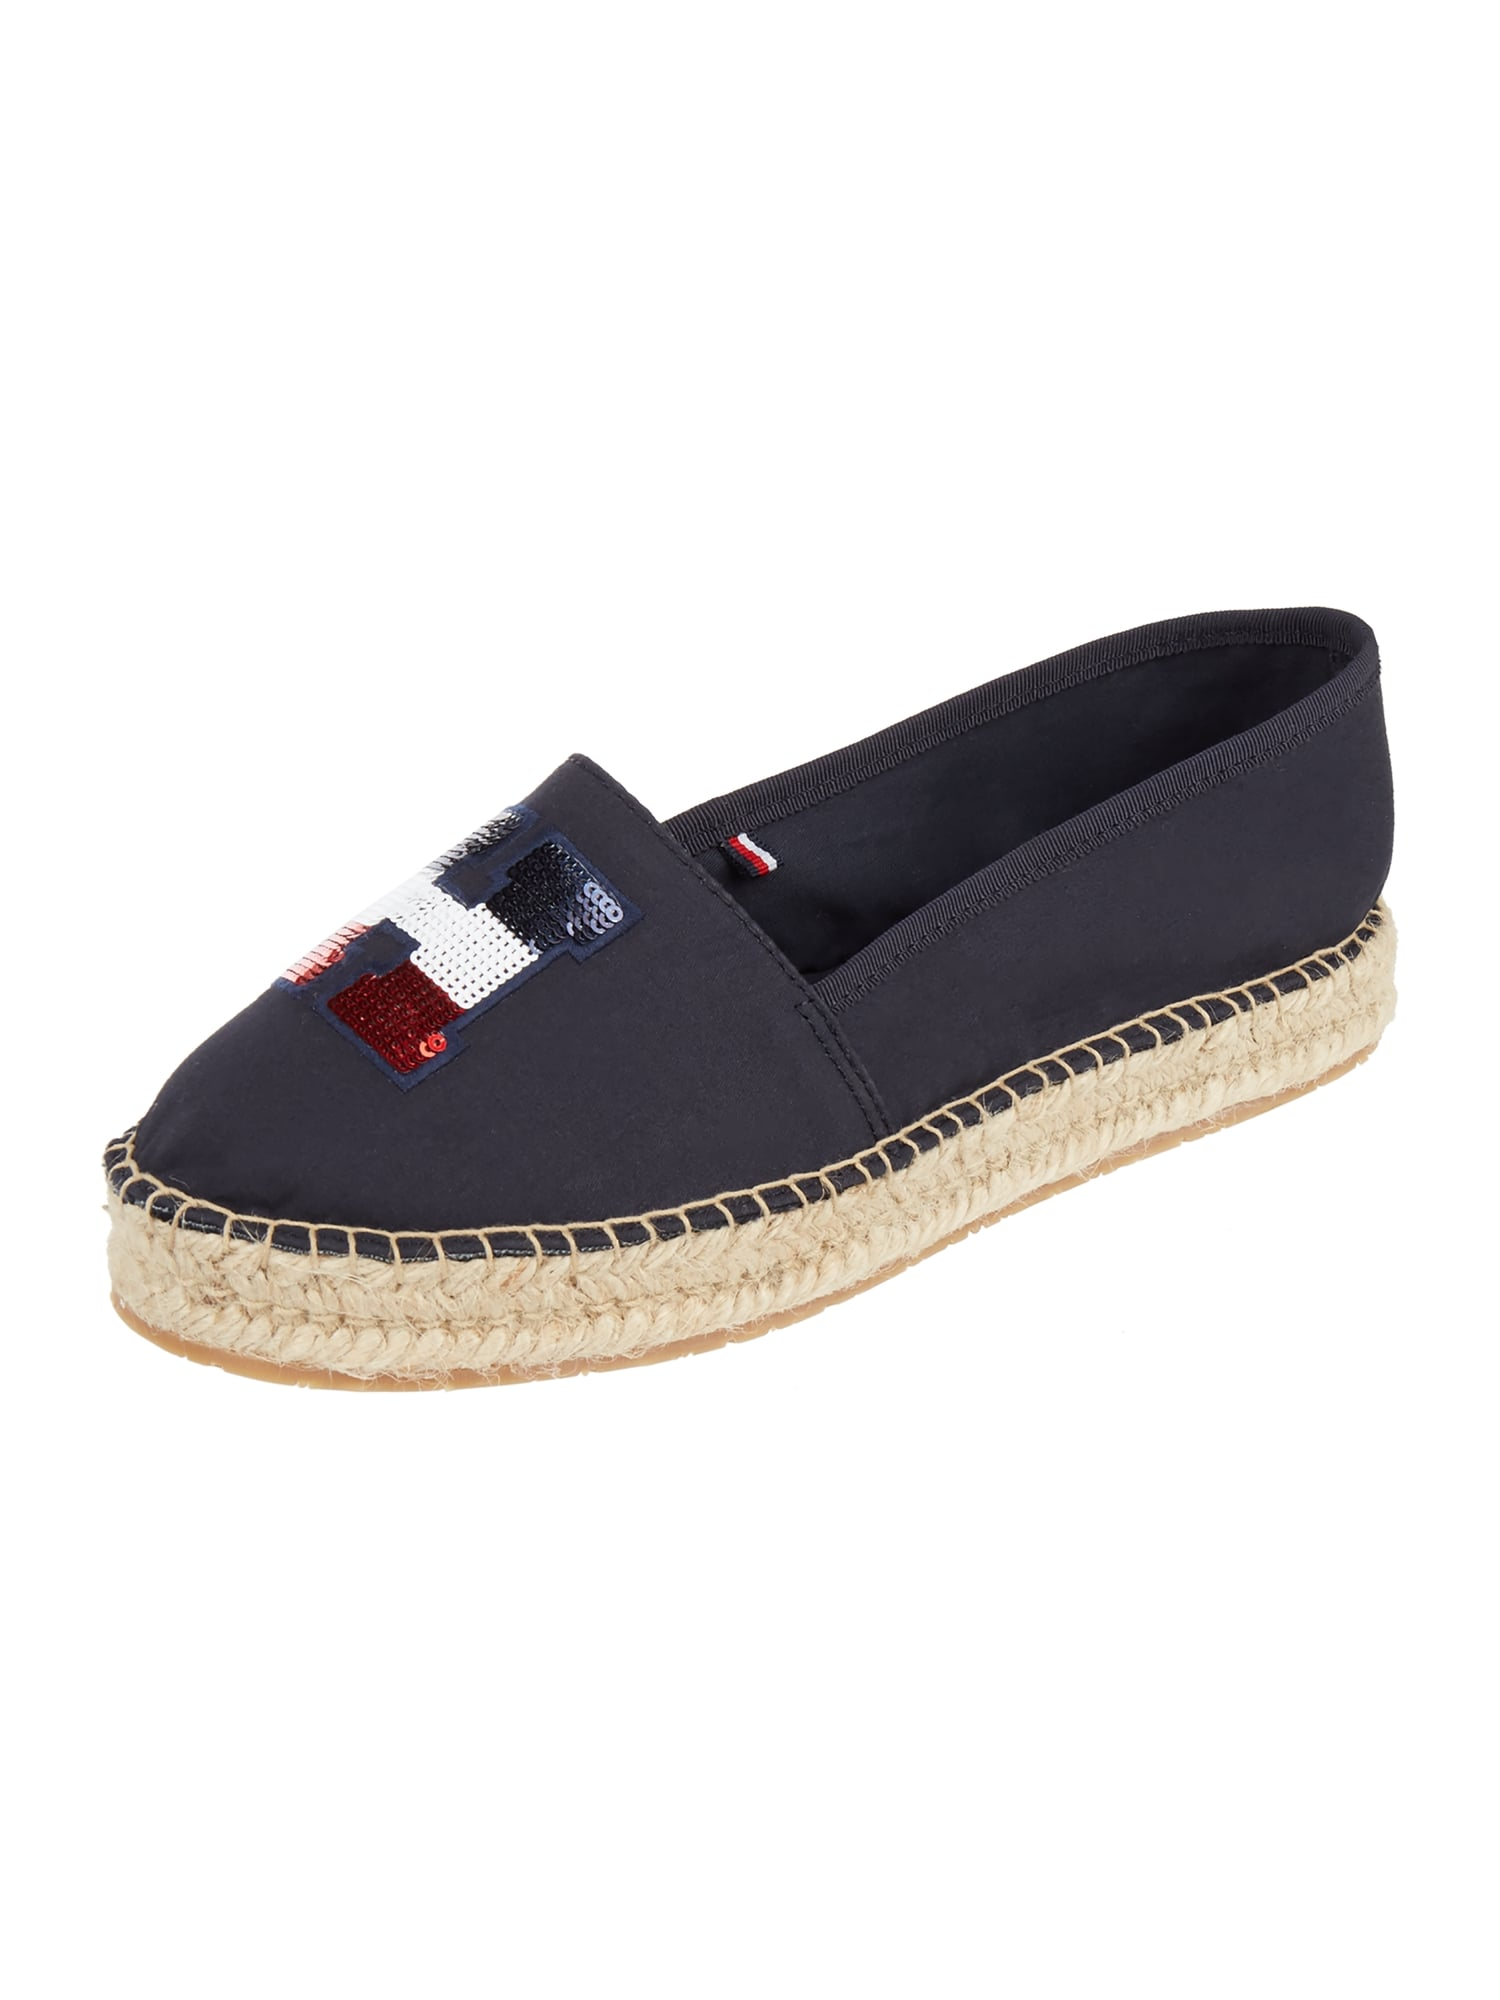 tommy hilfiger espadrilles mit pailletten besatz in blau. Black Bedroom Furniture Sets. Home Design Ideas